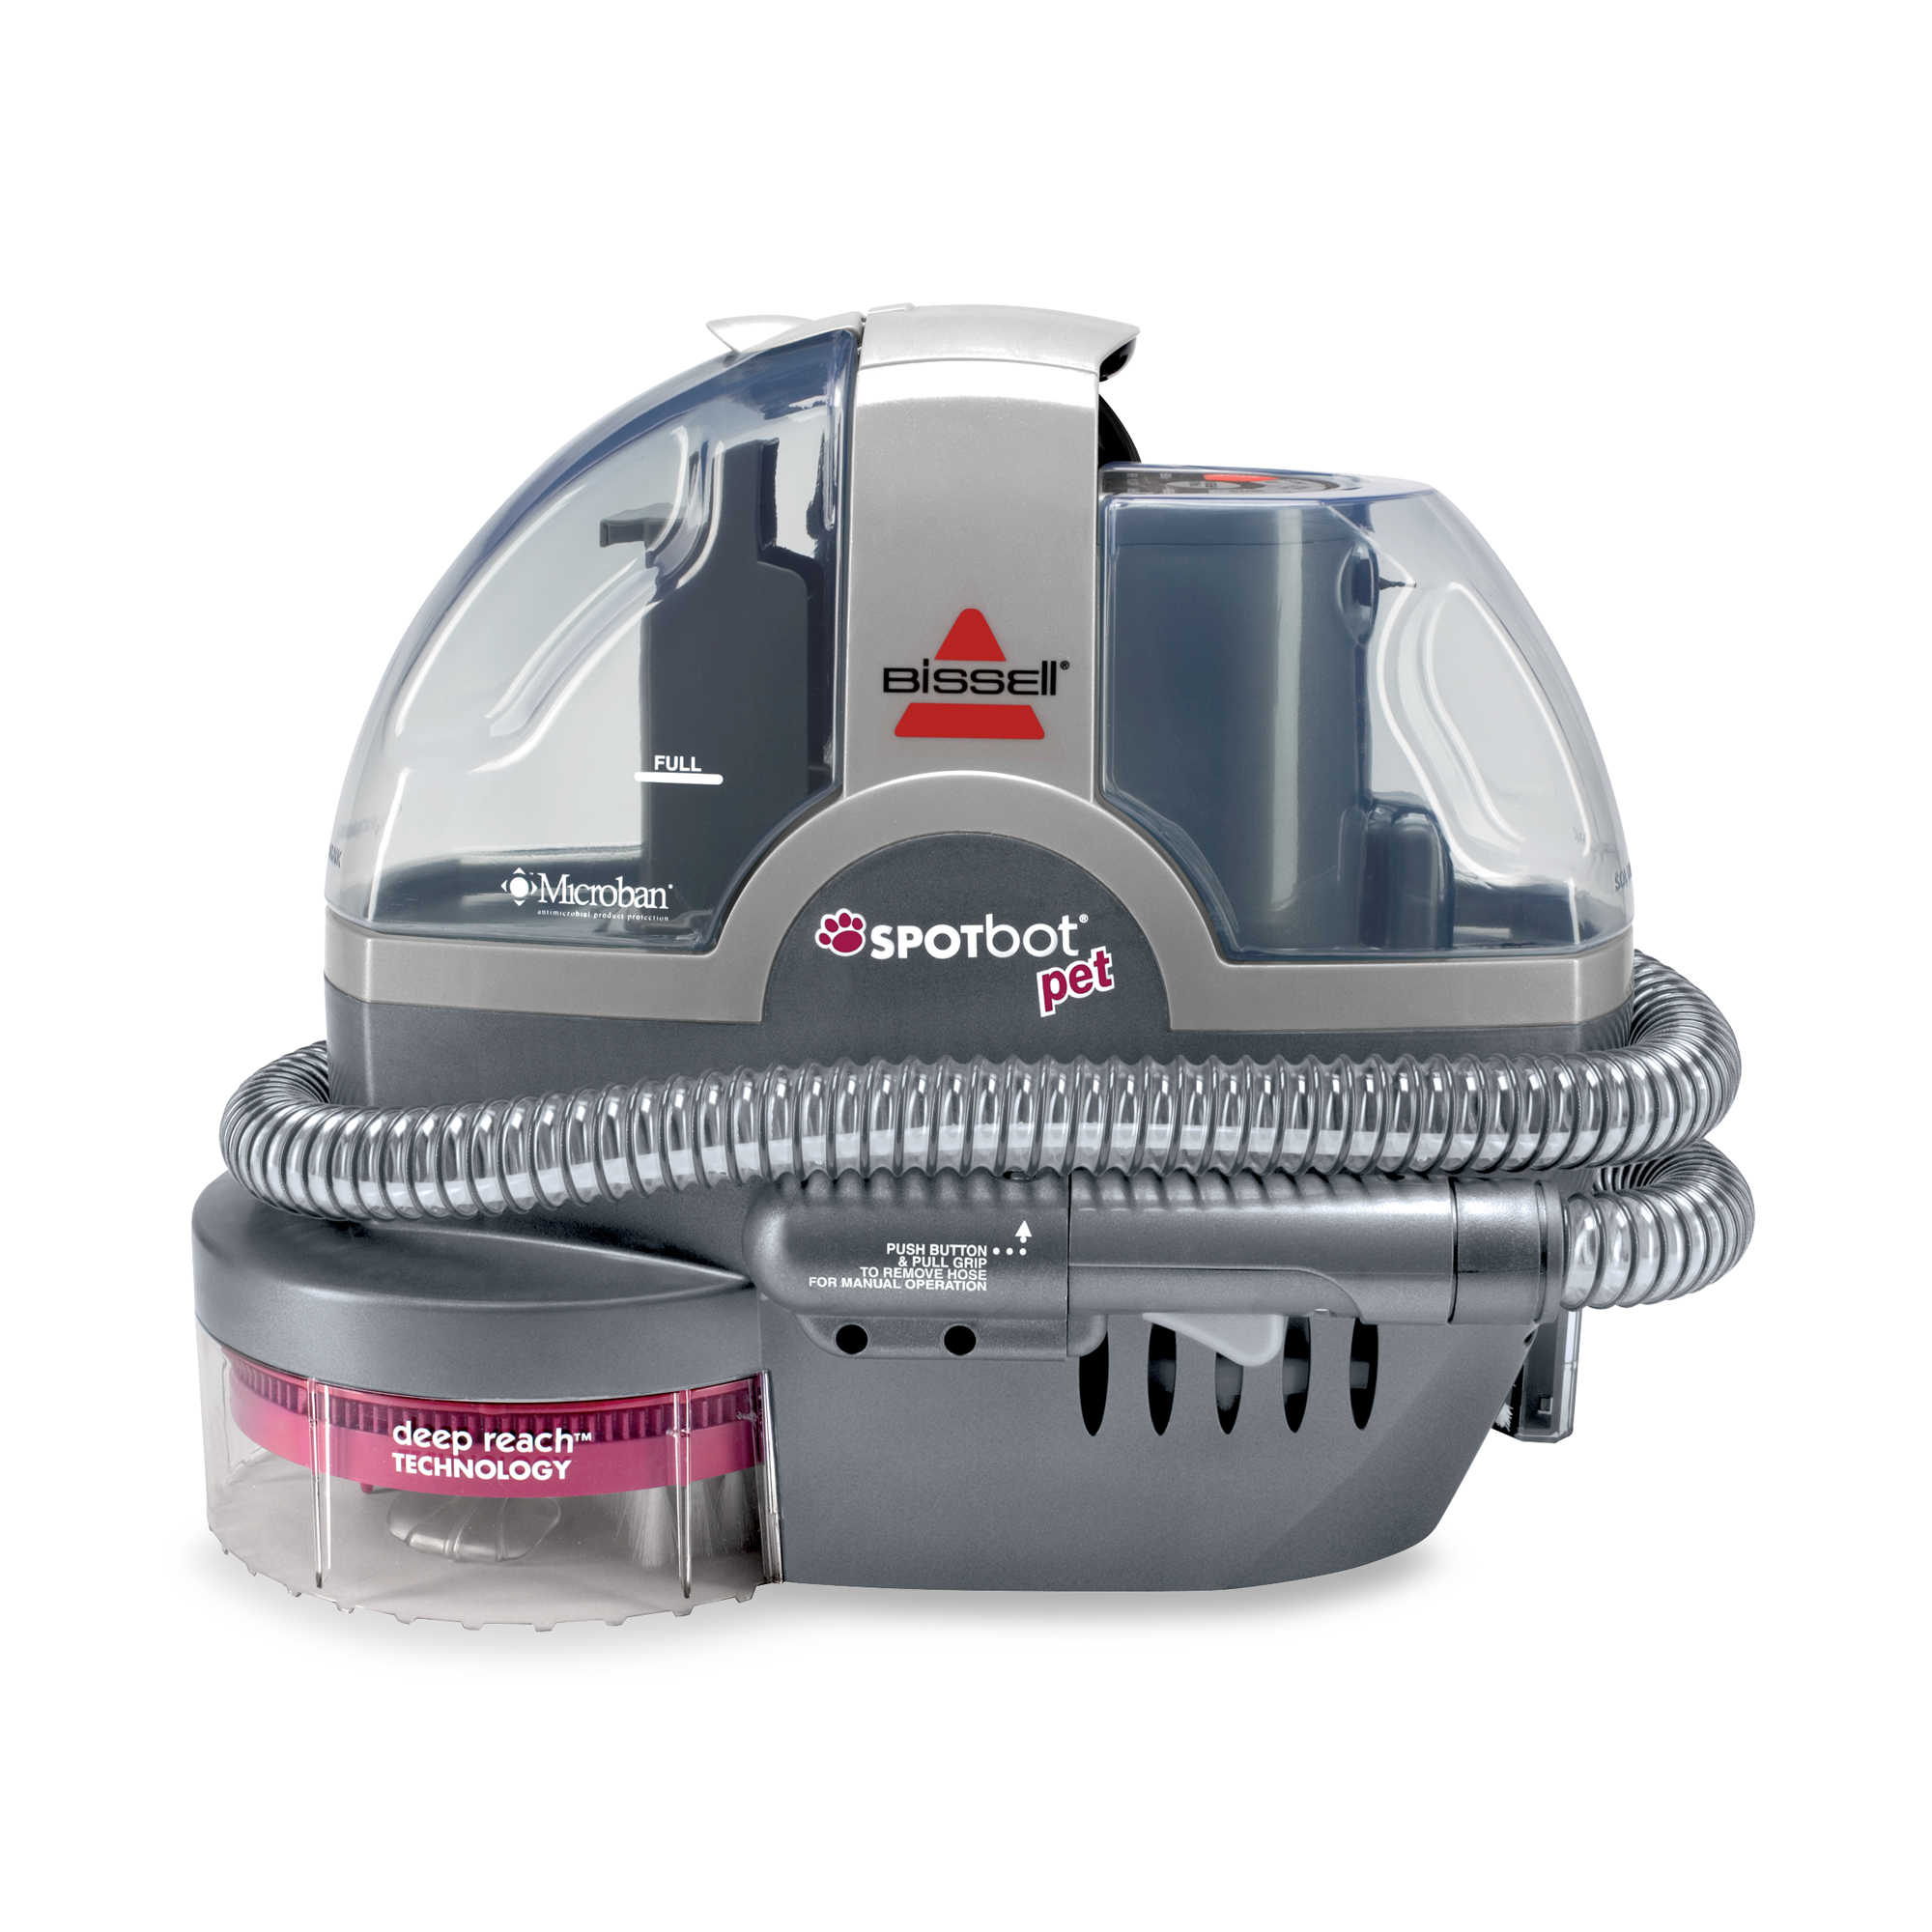 Best Steam Cleaners In 2018 Top 10 Cleaner amp Carpet Washer Reviews